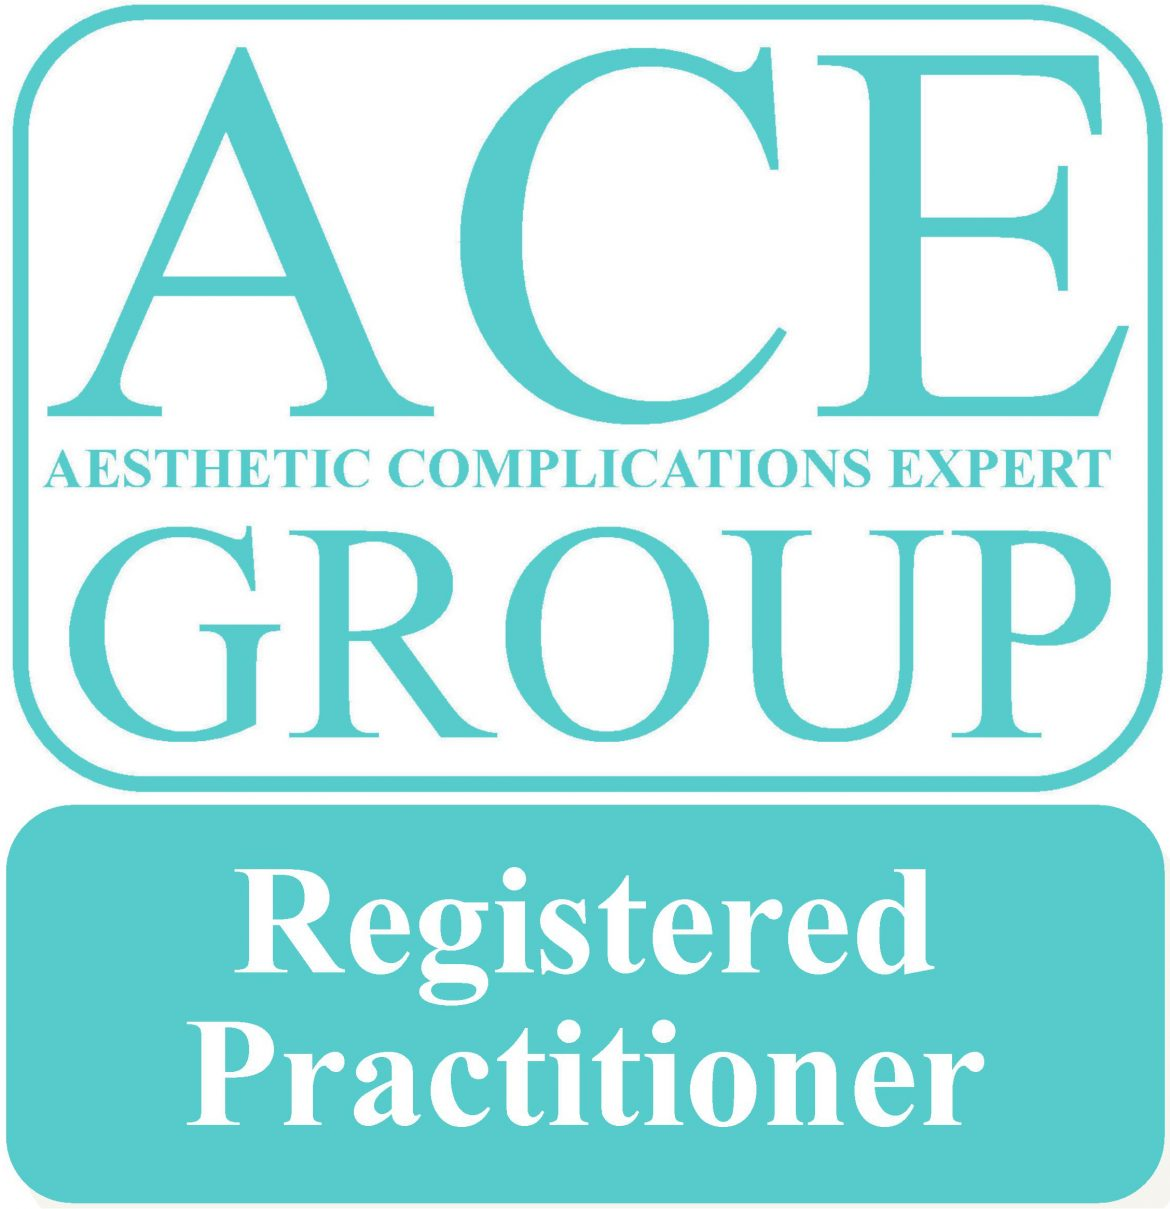 Registered-Practitioner.jpg